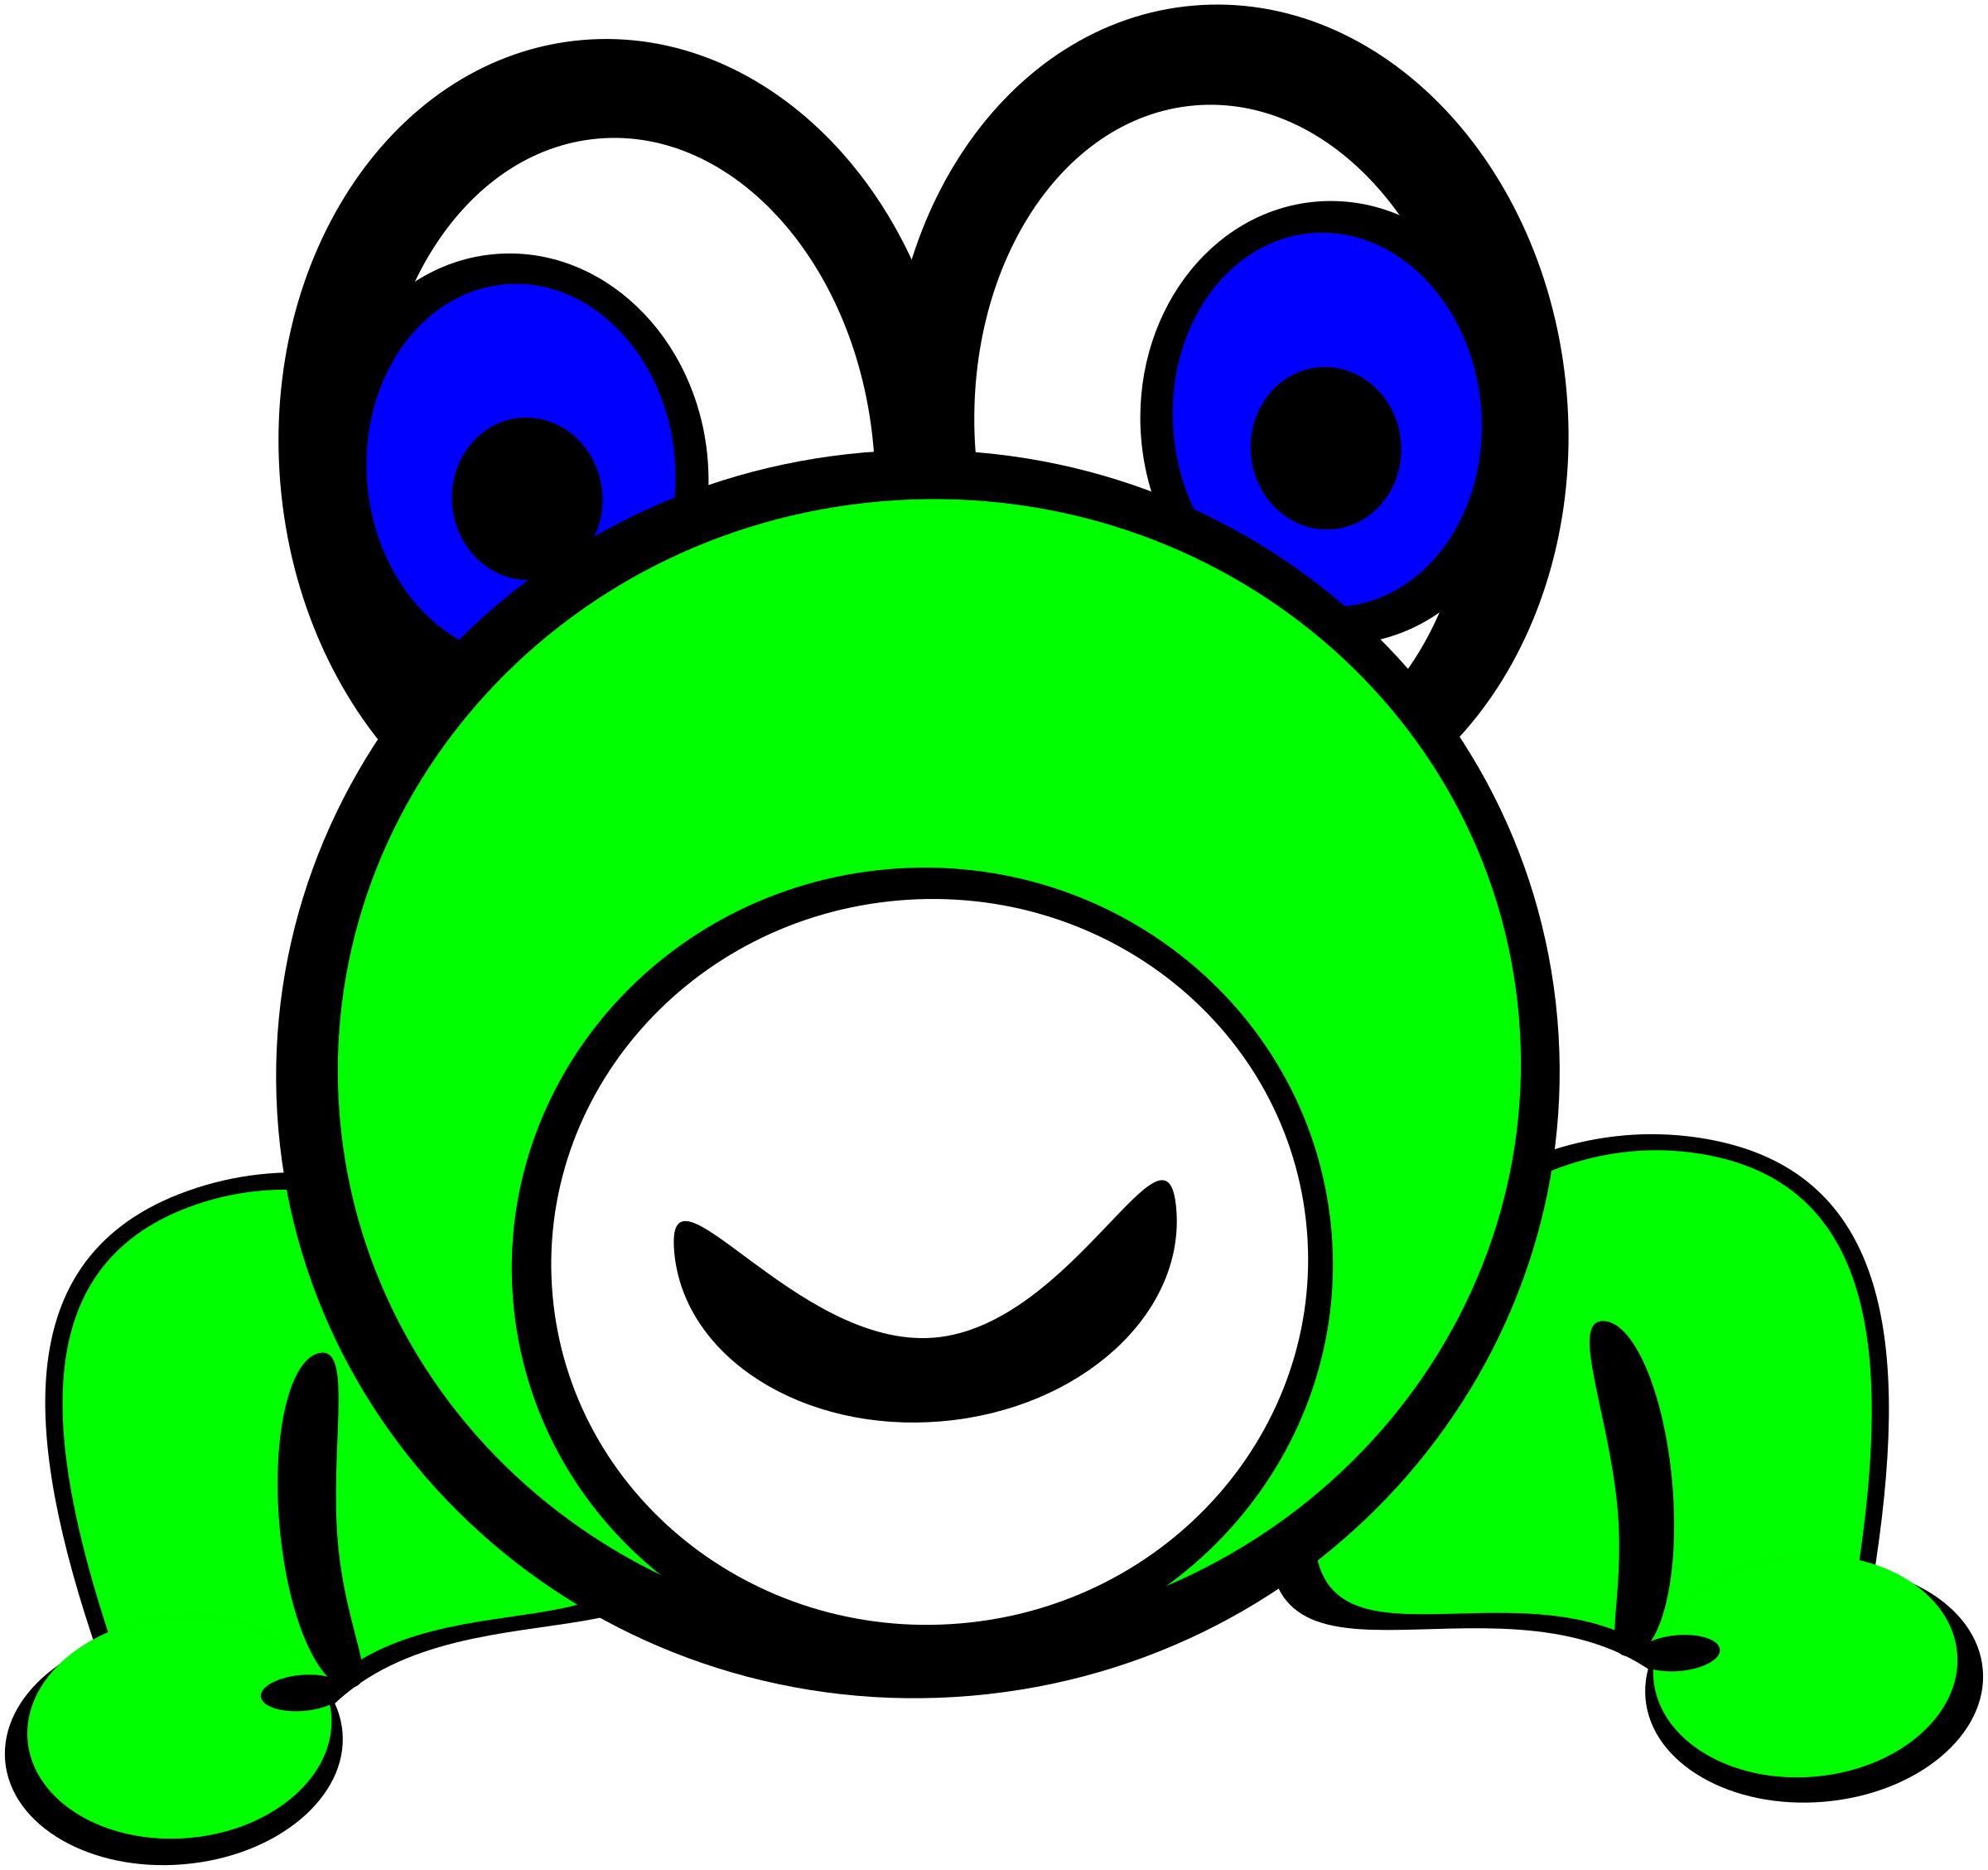 frog by PeterBrough